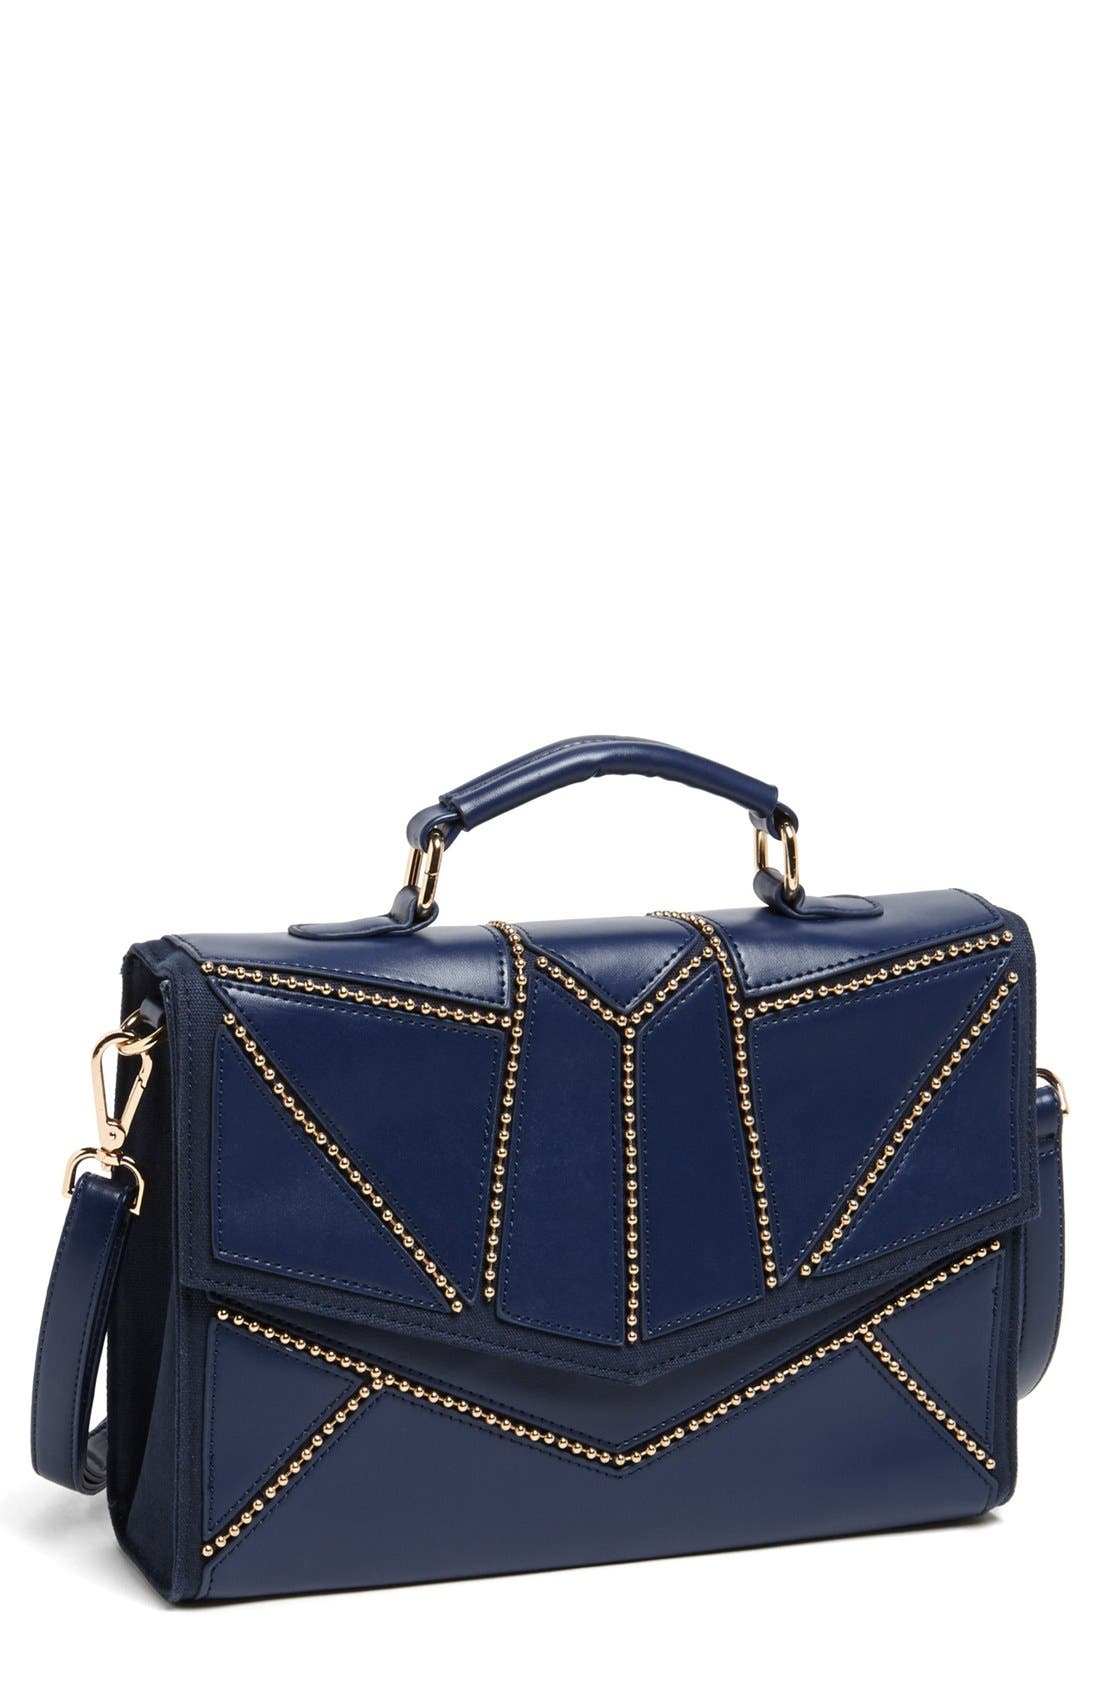 Main Image - Nila Anthony Studded Satchel